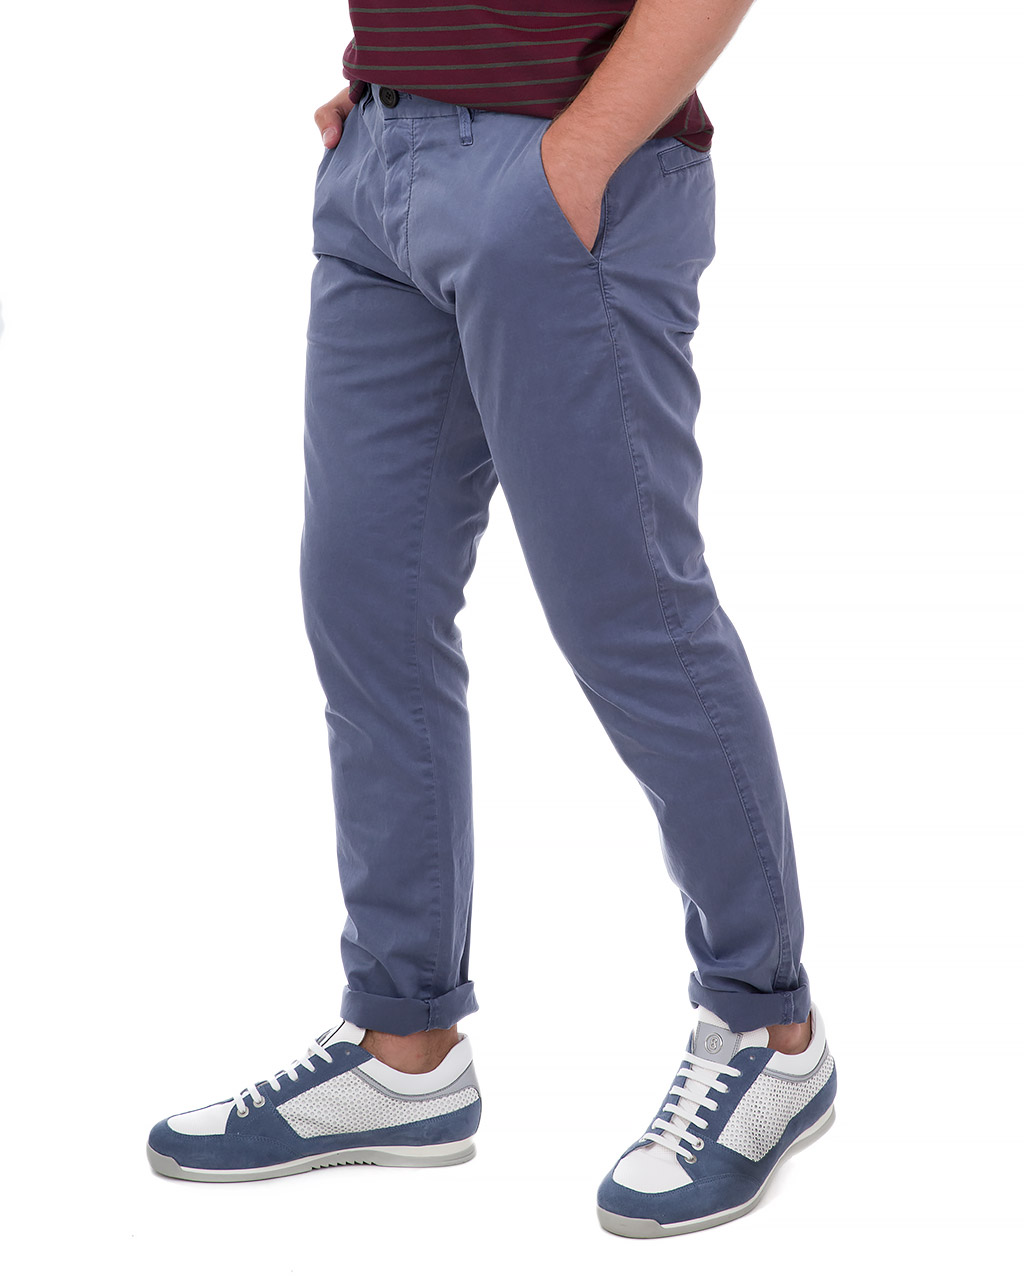 Men's trousers 8351-430-941/9 (3)